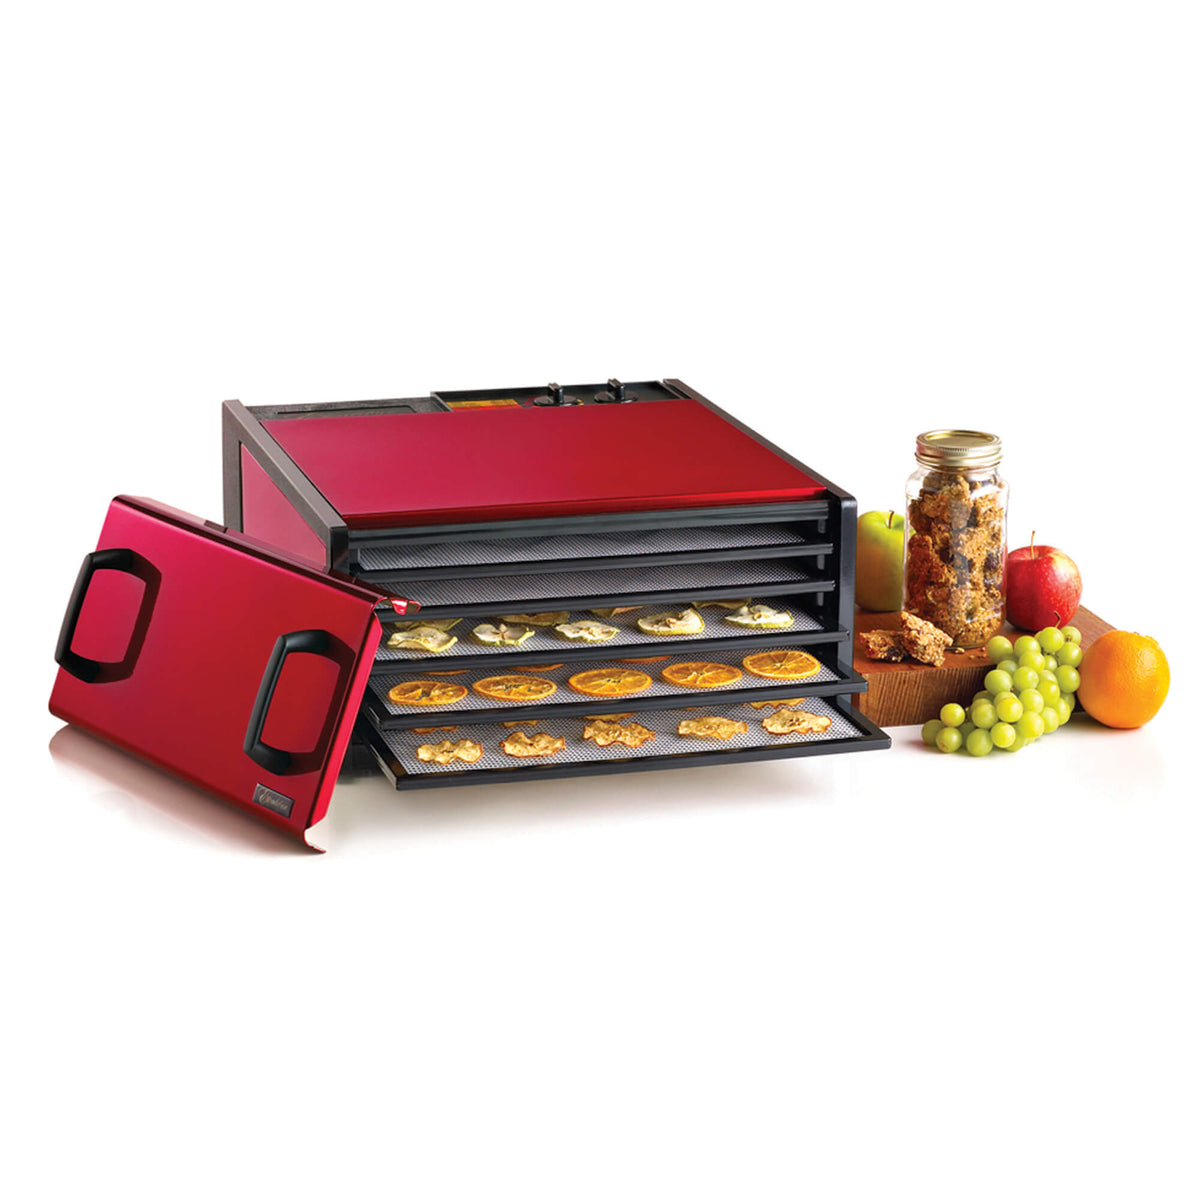 Excalibur D502RC Radiant Cherry 5 tray stainless steel dehydrator with door propped to the side and food on the trays.